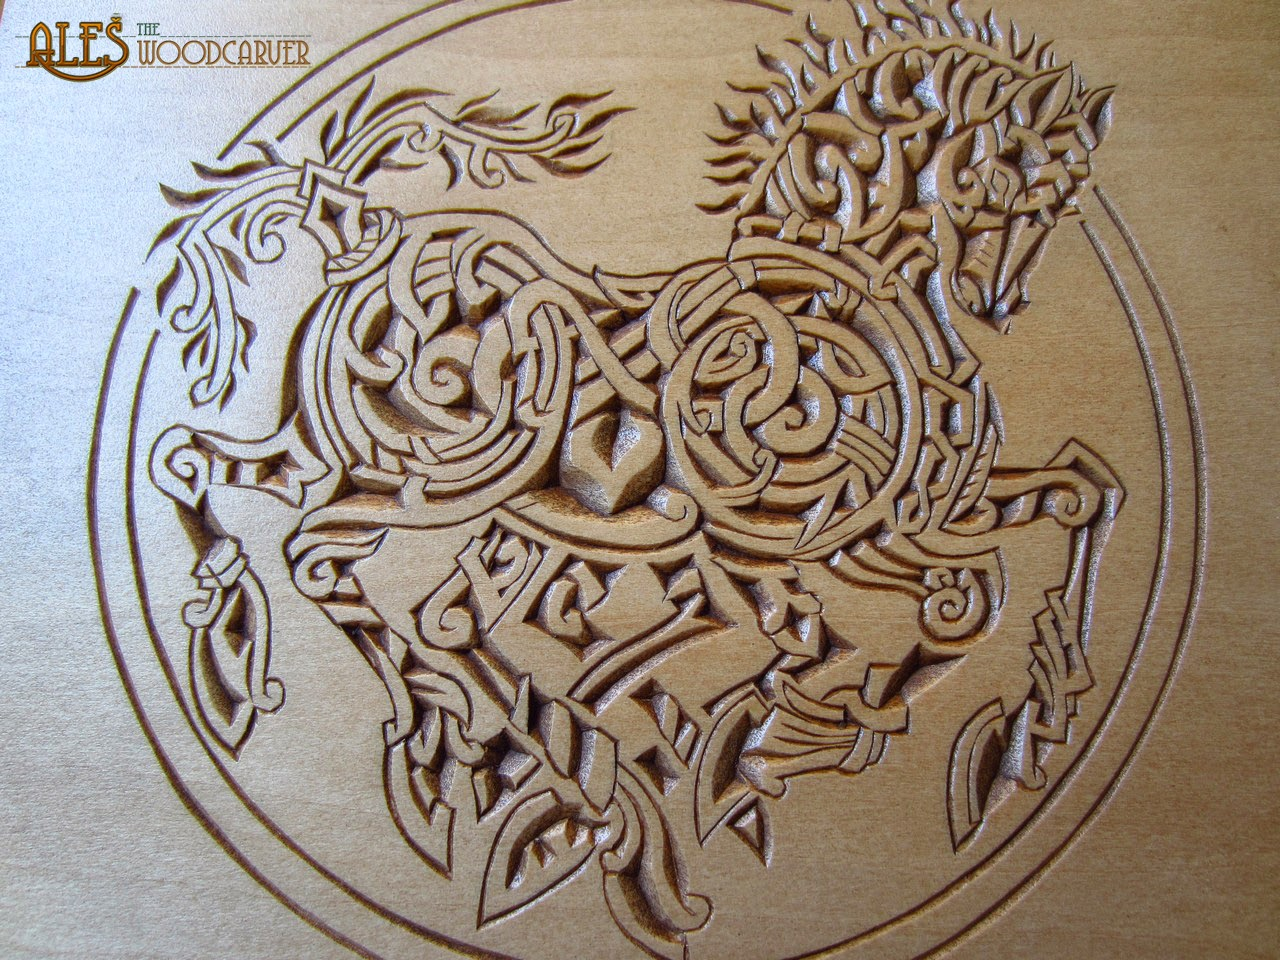 Ales the woodcarver chip carved sleipnir trinket box